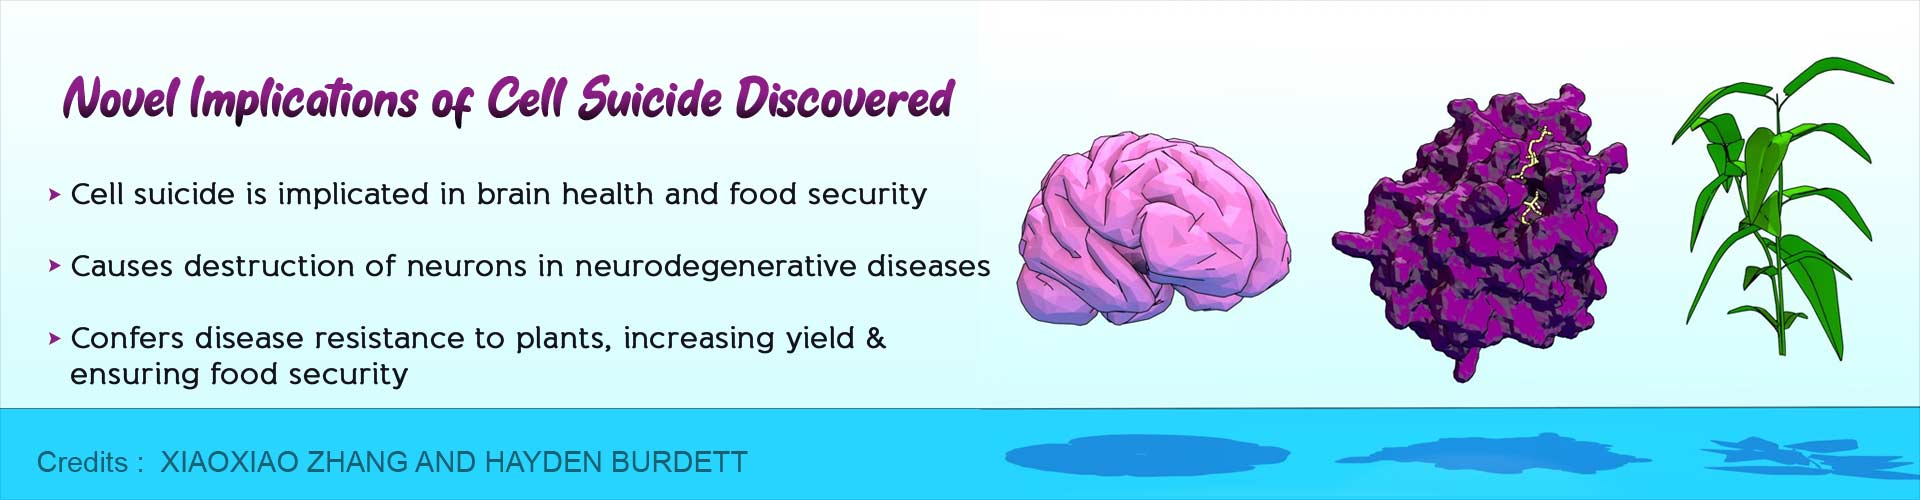 Cell Suicide Linked to Brain Health and Food Security